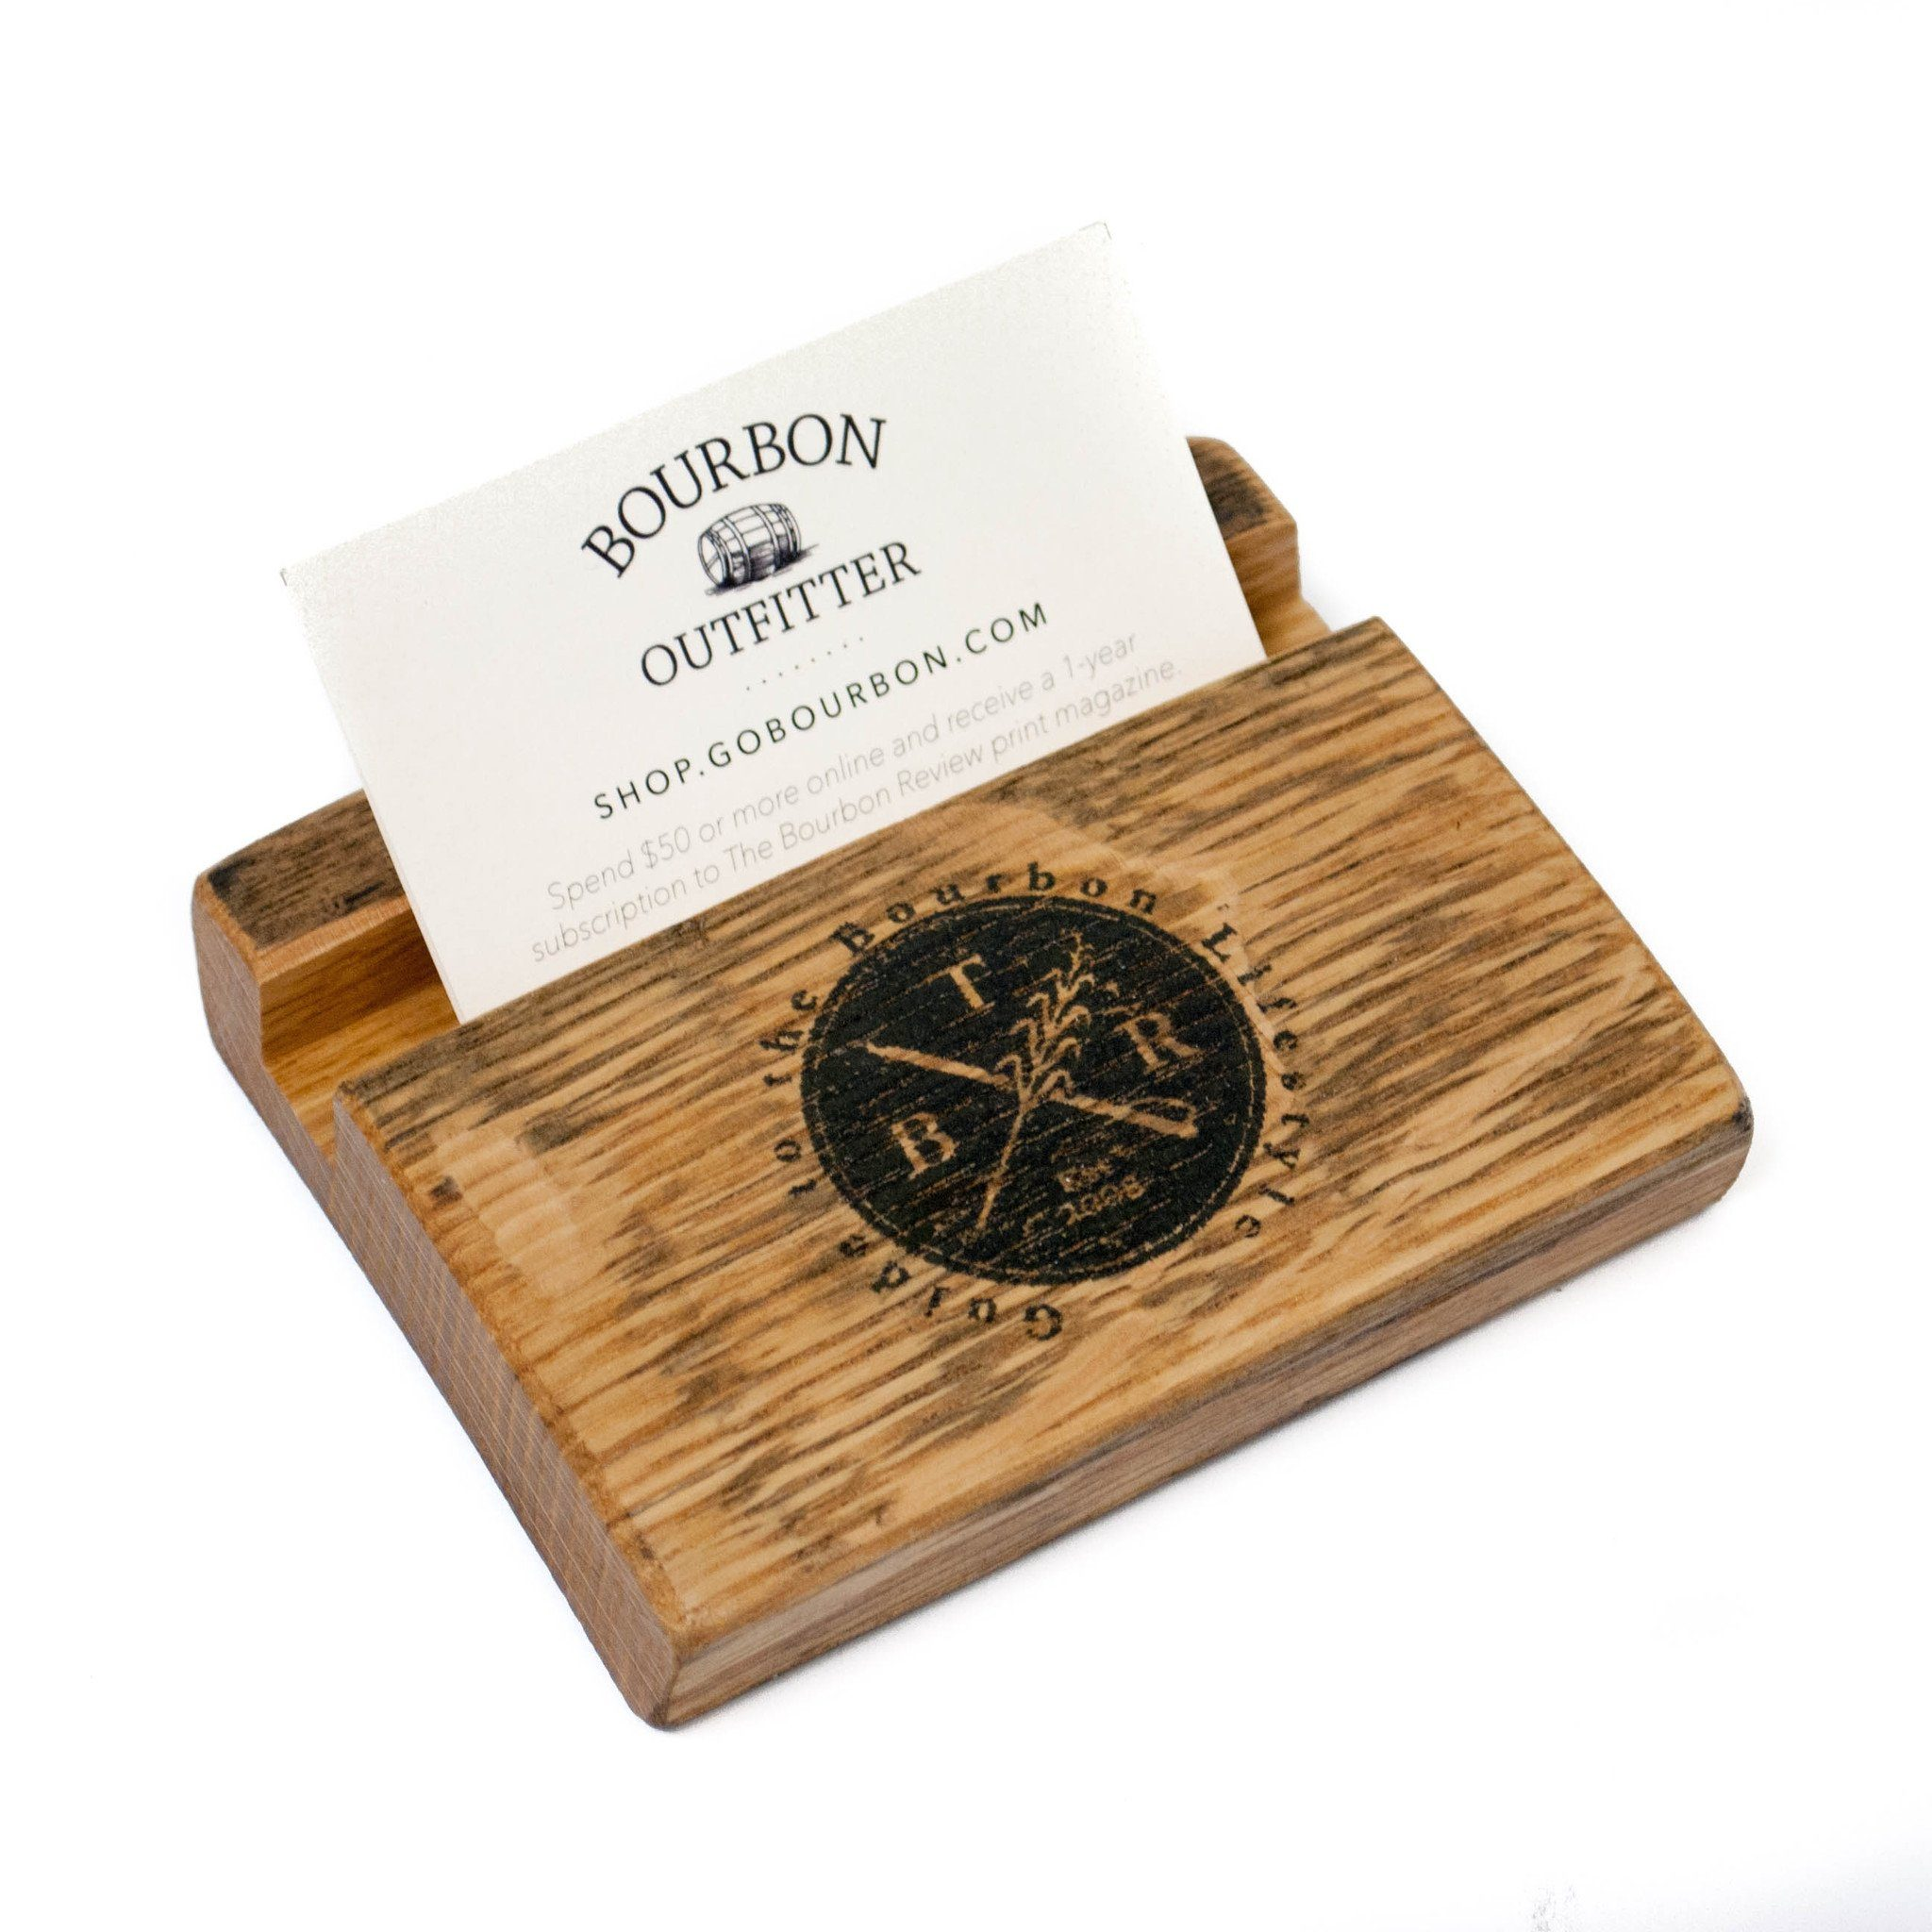 Bourbon Barrel Business Card Holder - Bourbon Outfitter